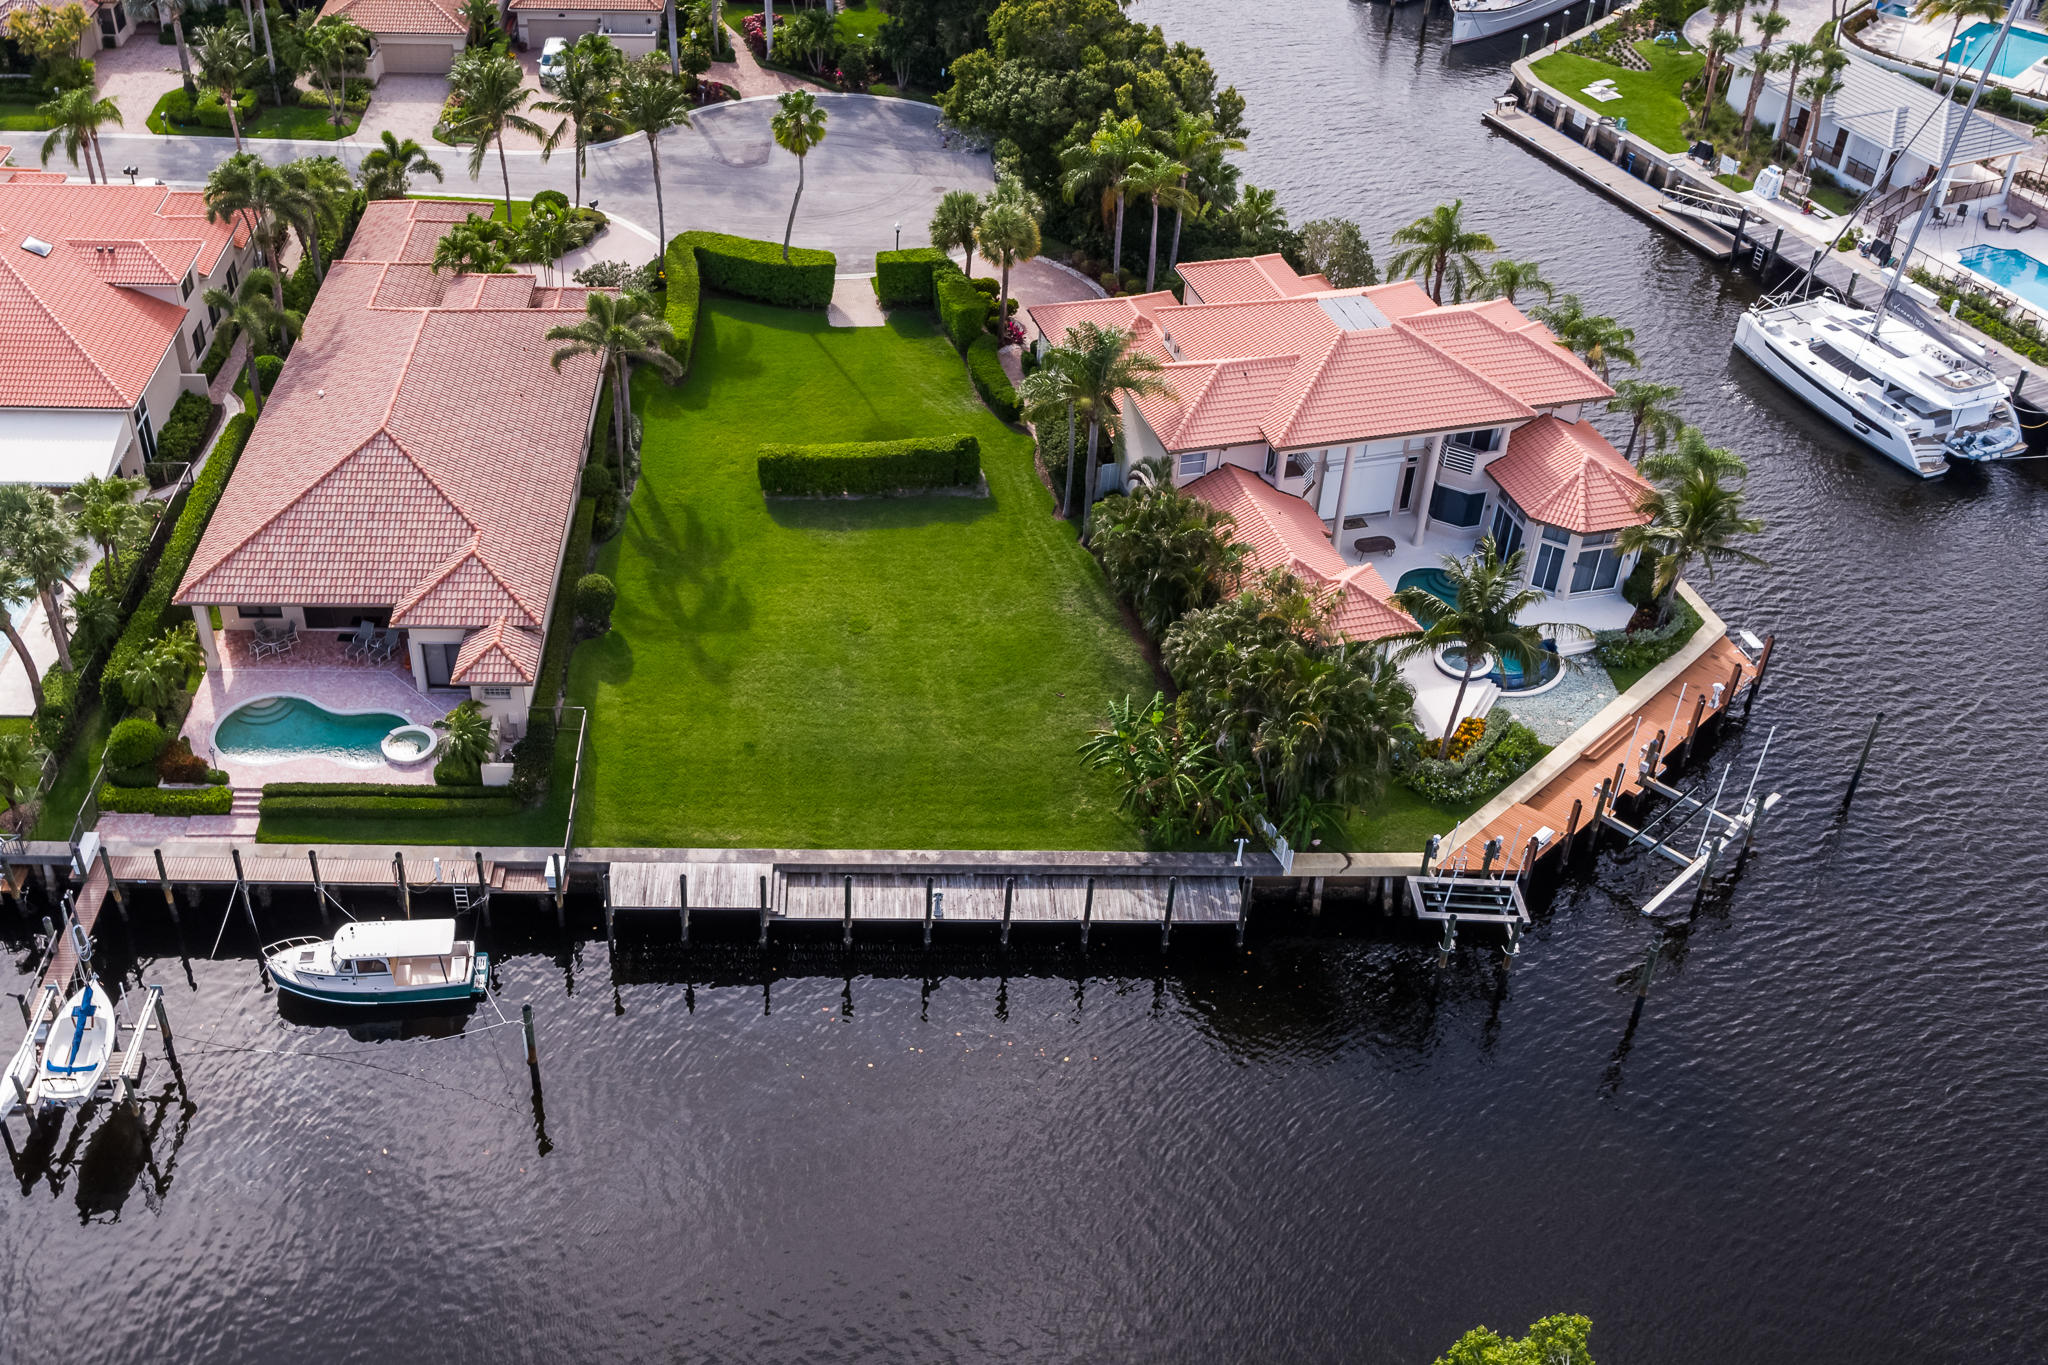 2075 La Porte Drive, Palm Beach Gardens, Florida 33410, ,C,Single family,La Porte,RX-10433199